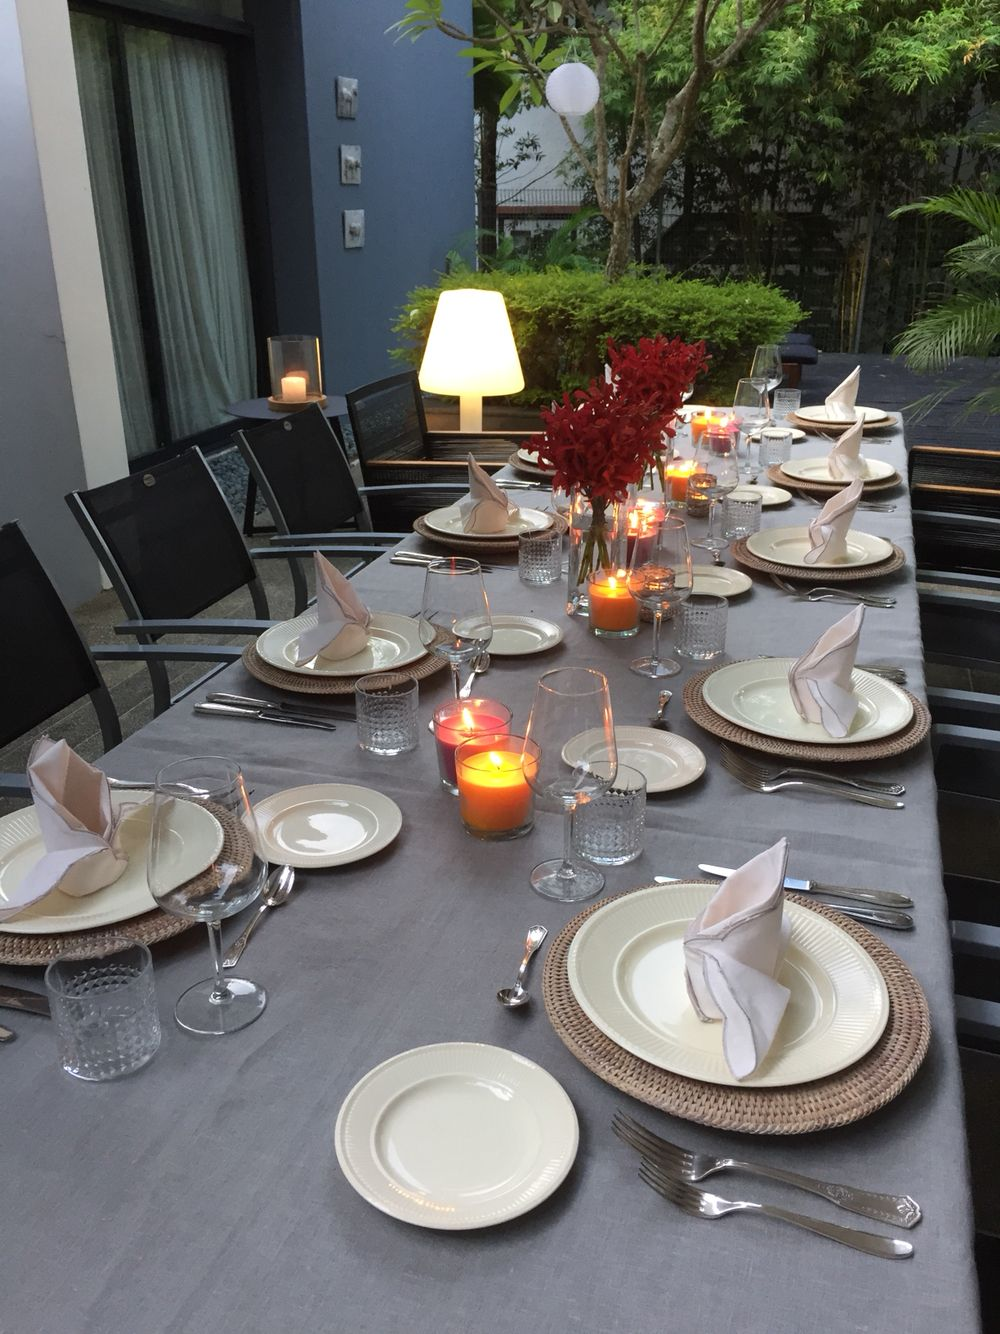 Cosy Outdoor Fine Dining Dining Table Decor Dining Table Fine Dining